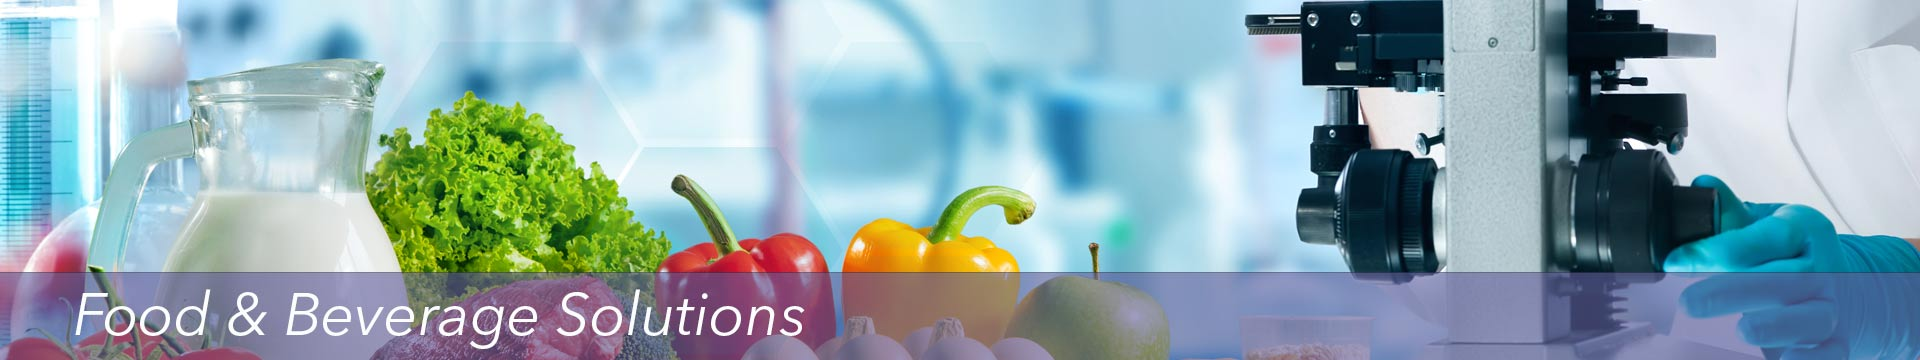 Xylem Lab Solutions offers cost-effective titrators and accessories for labs in the Food and Beverage Industry.